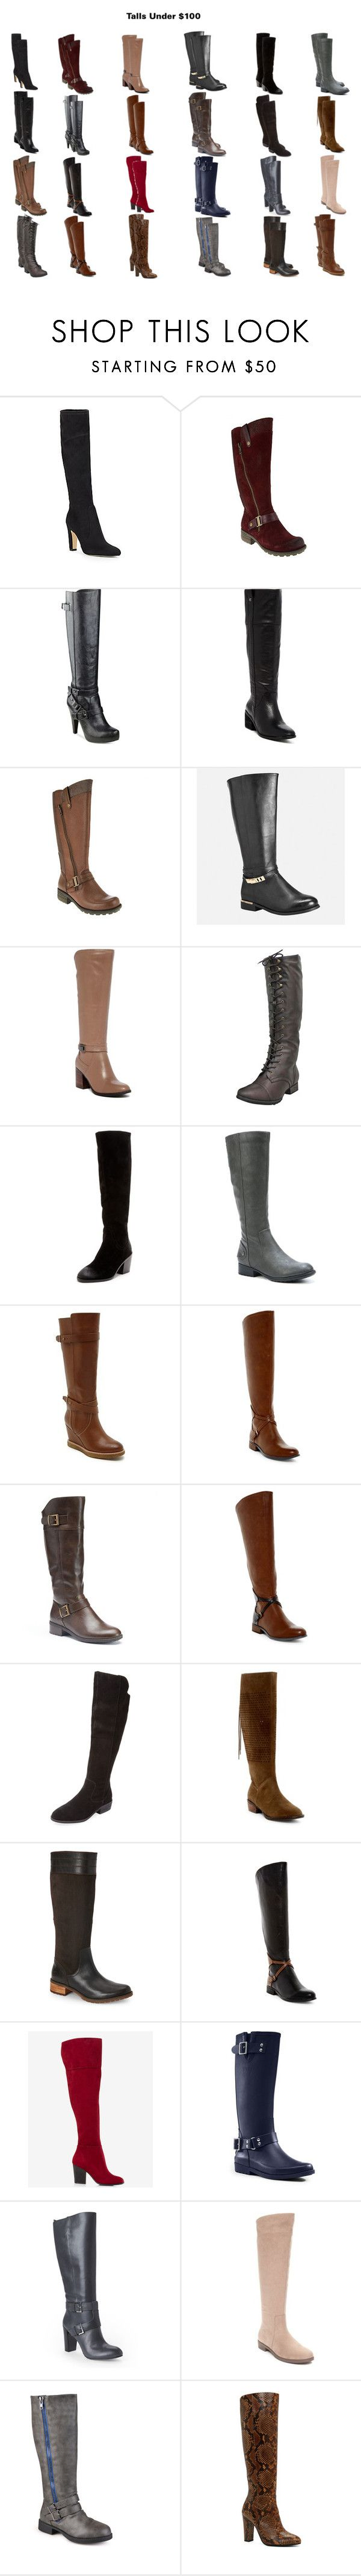 Find Your Perfect Pair of Boots for Fall by sade aladejana lewis.